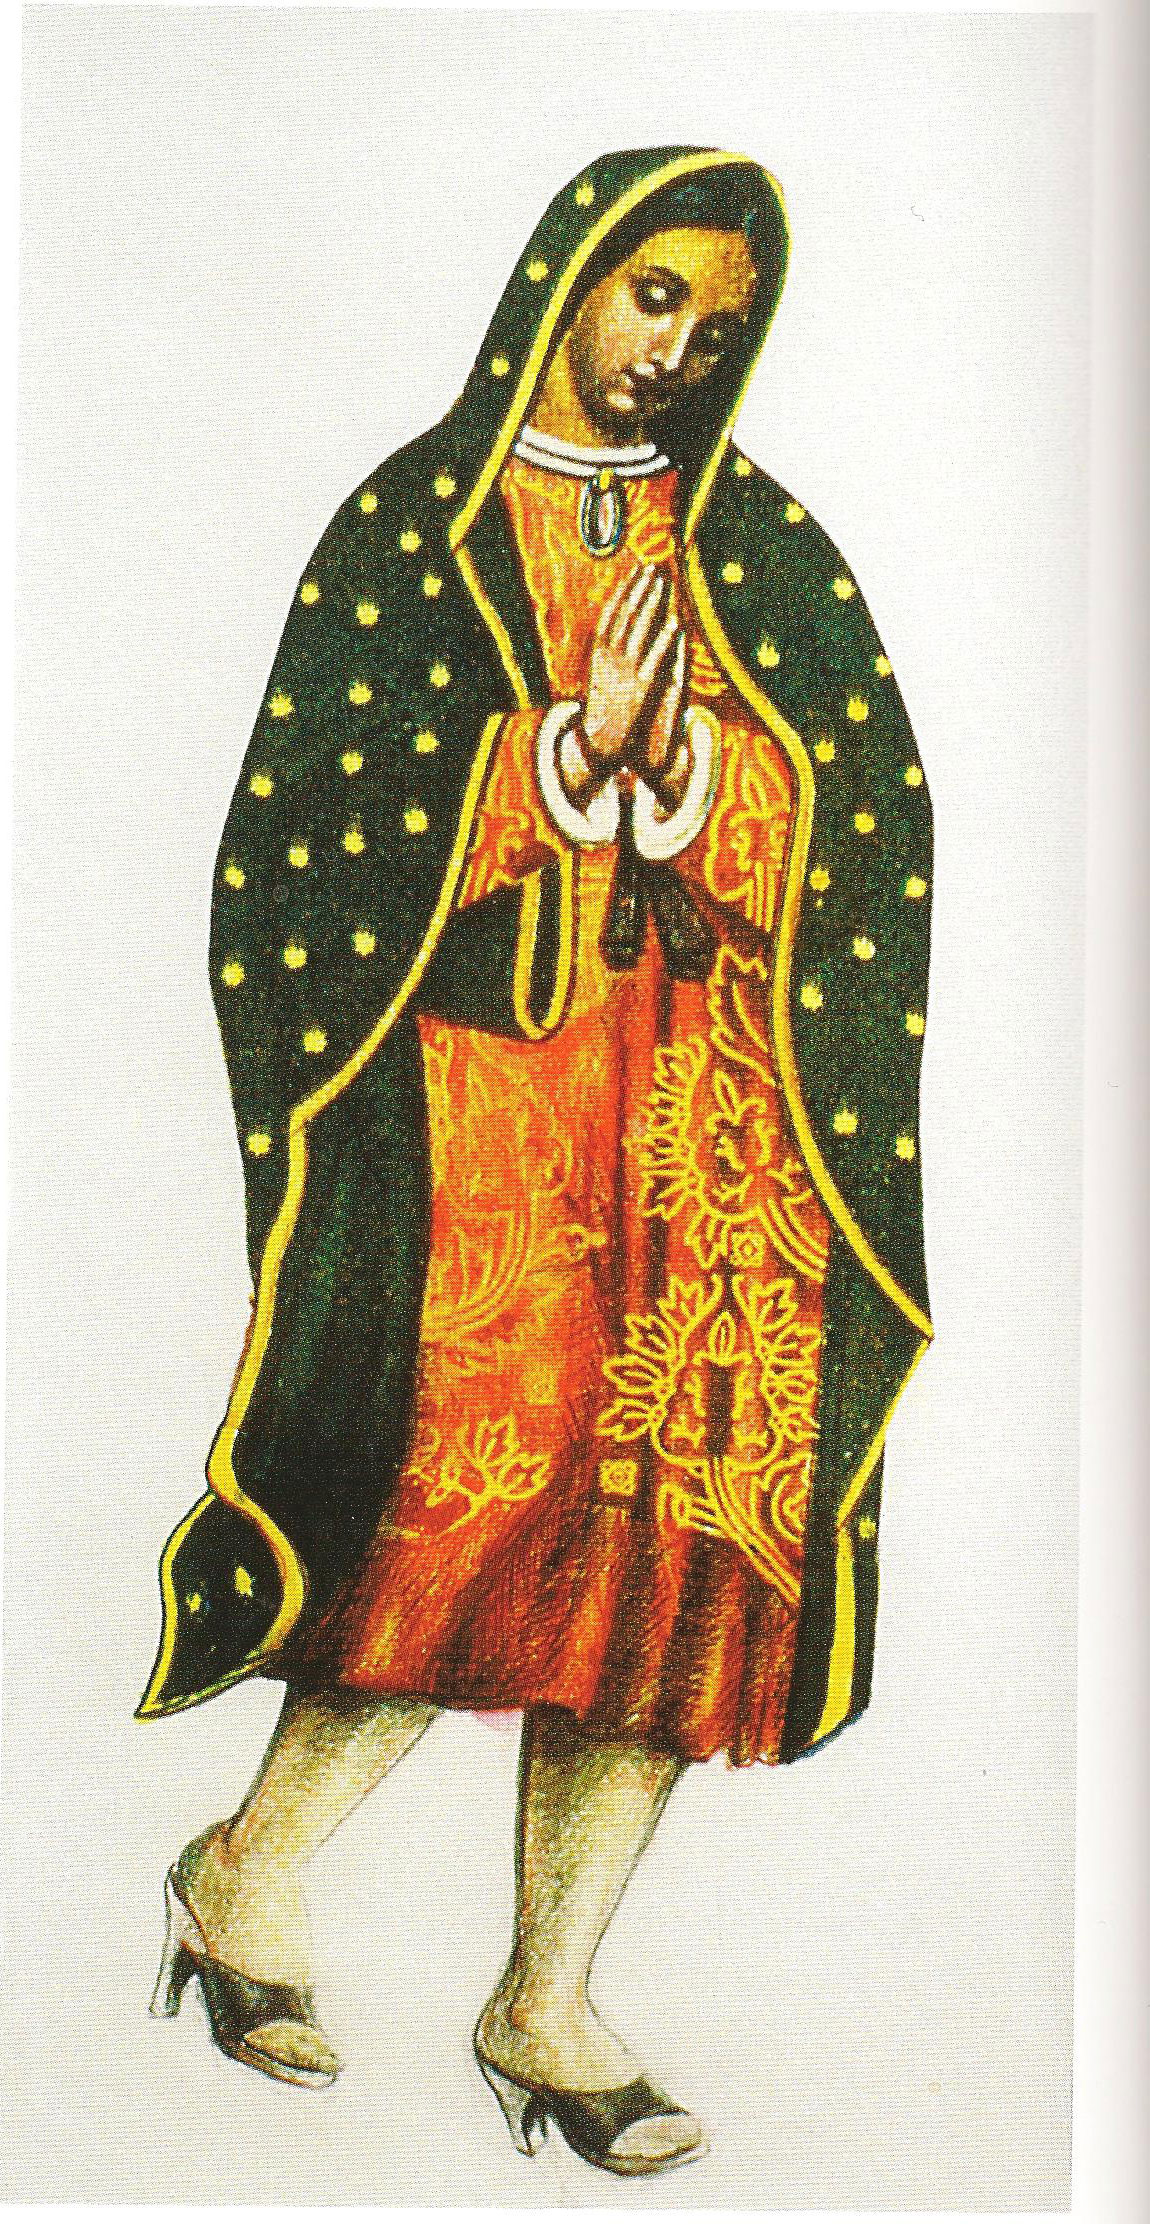 Walking Guadalupe, 1978. Mixed-media collage, 6 x 10 inches.